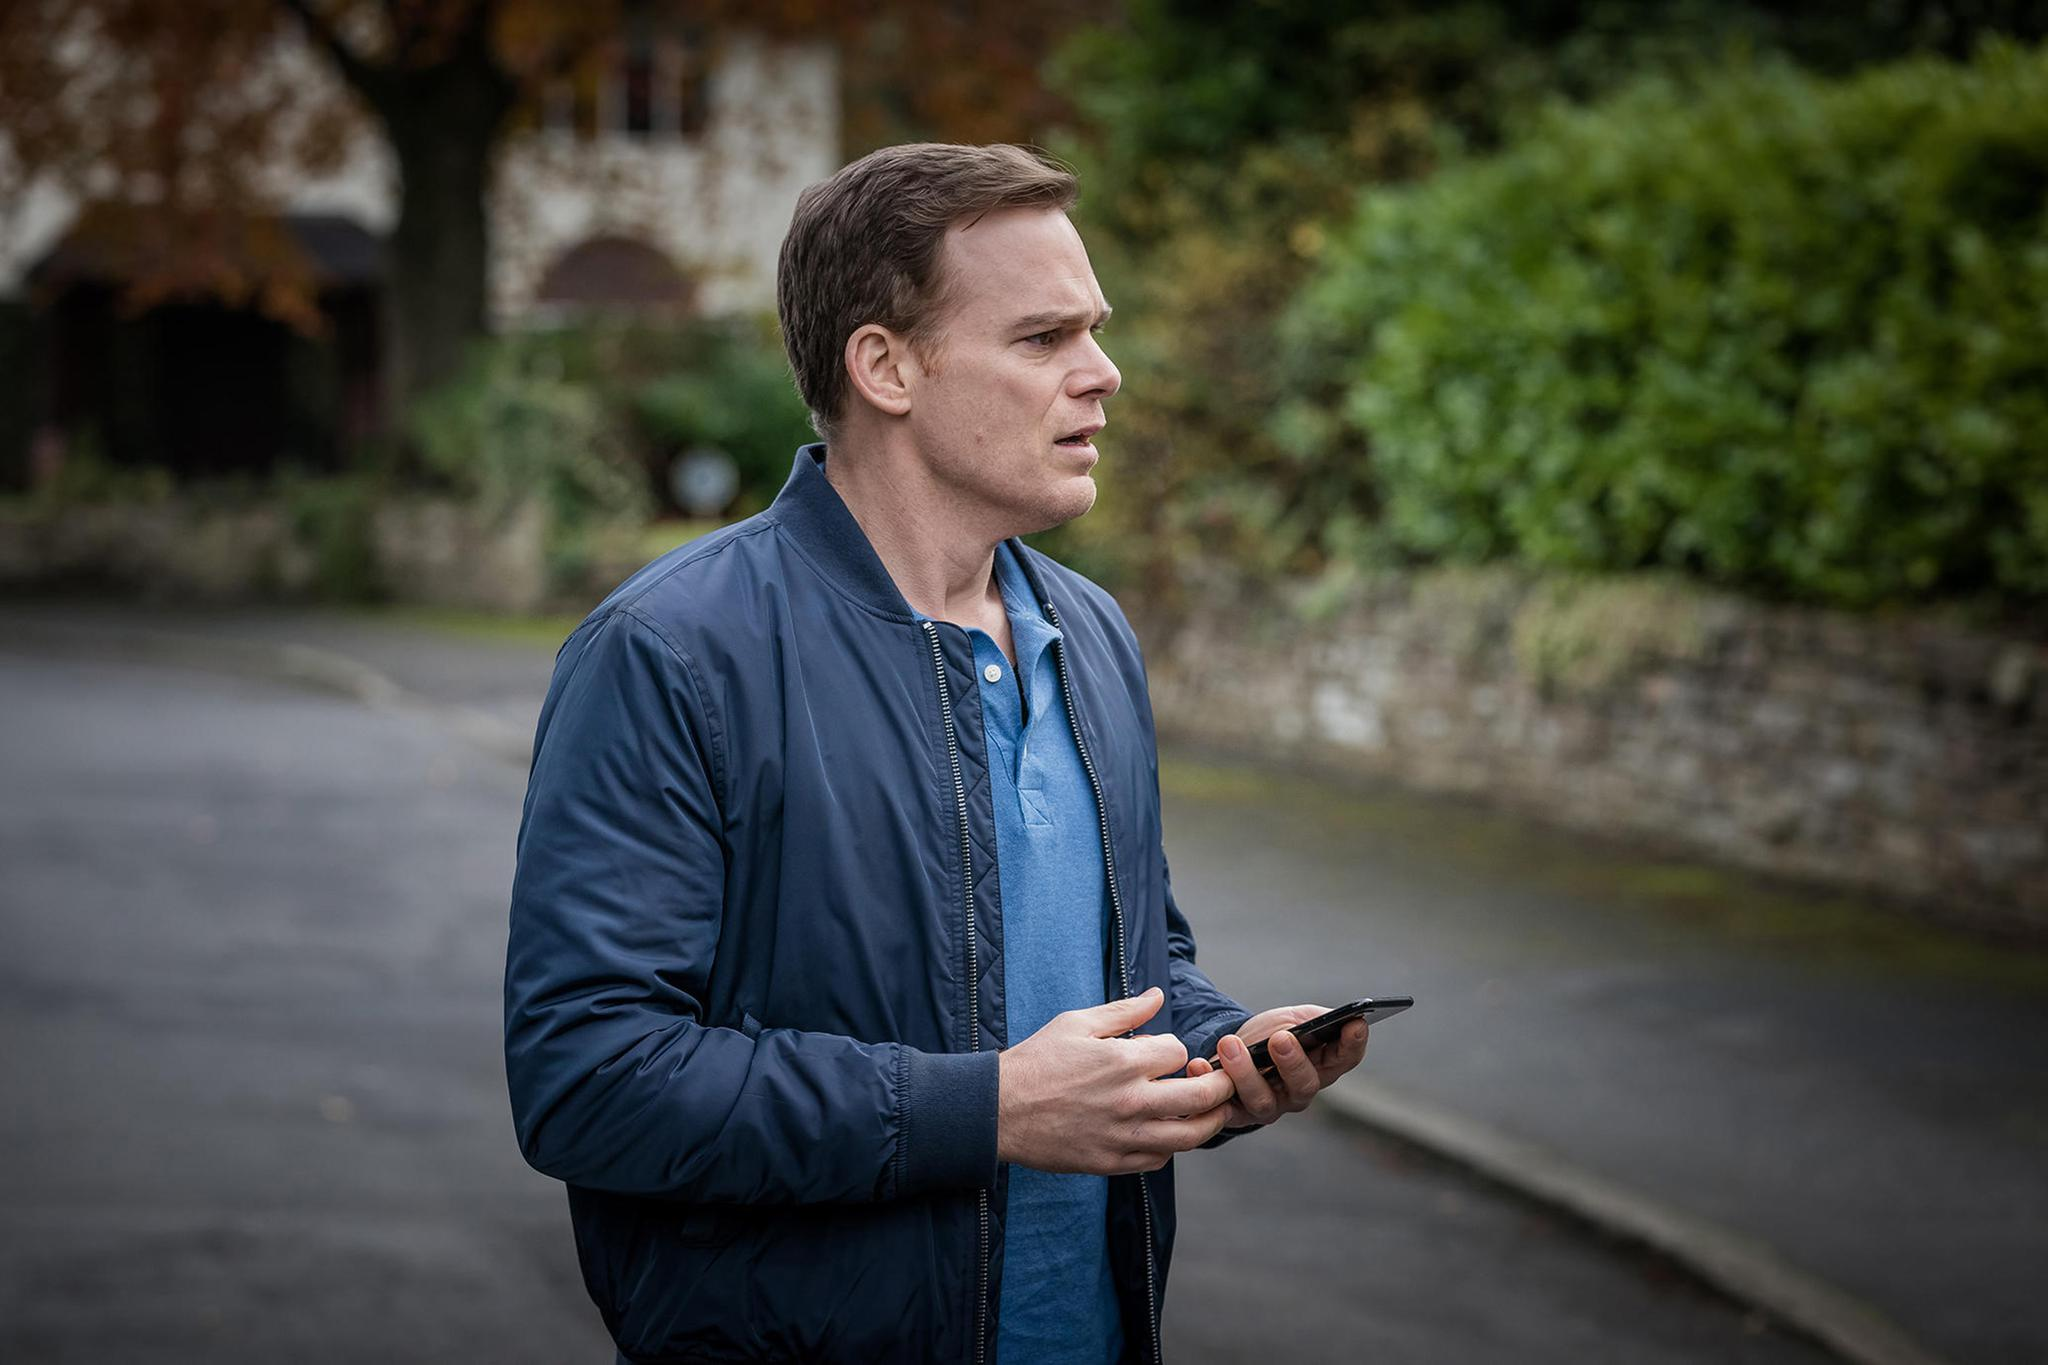 Mysteries Abound In The New Michael C  Hall Series 'Safe' On